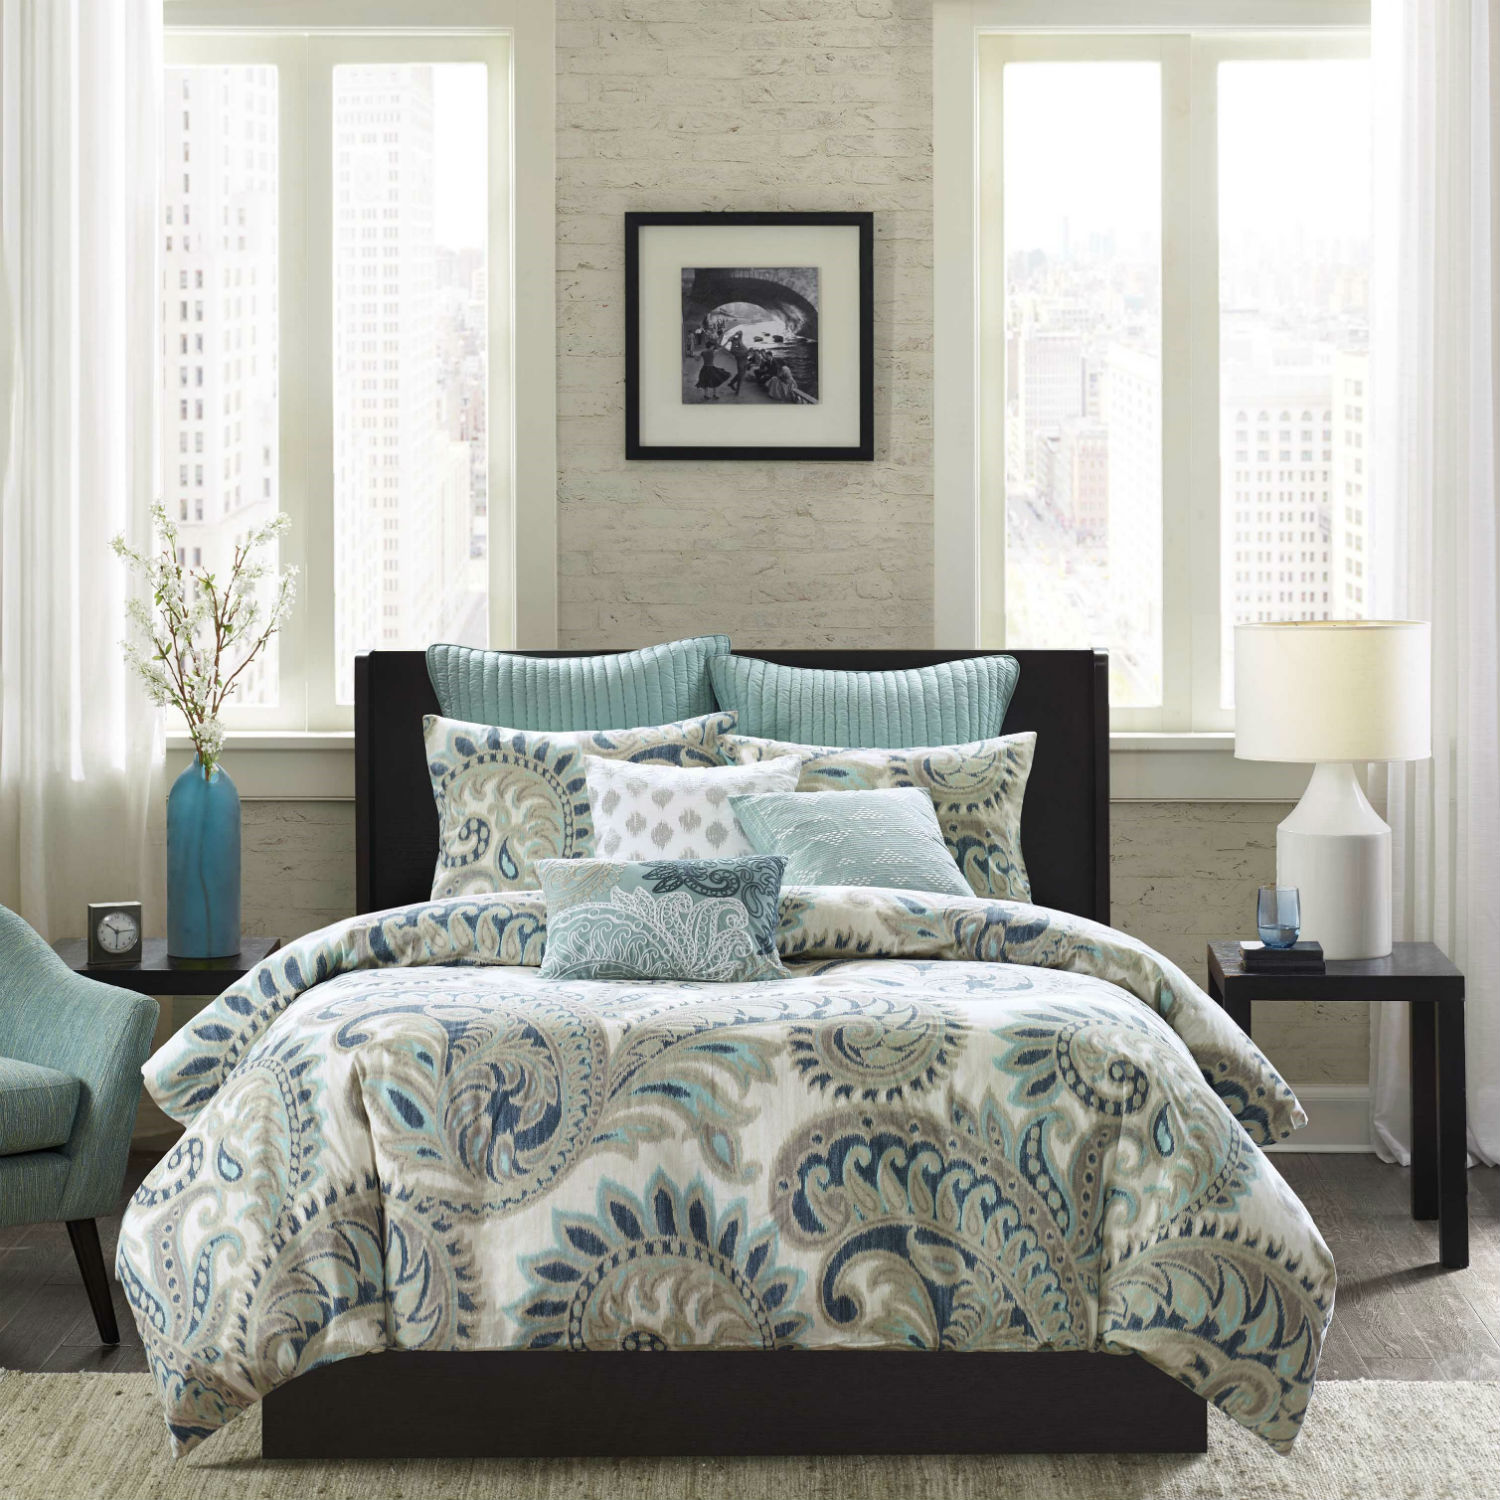 Mira by Ink & Ivy Bedding - BeddingSuperStore.com